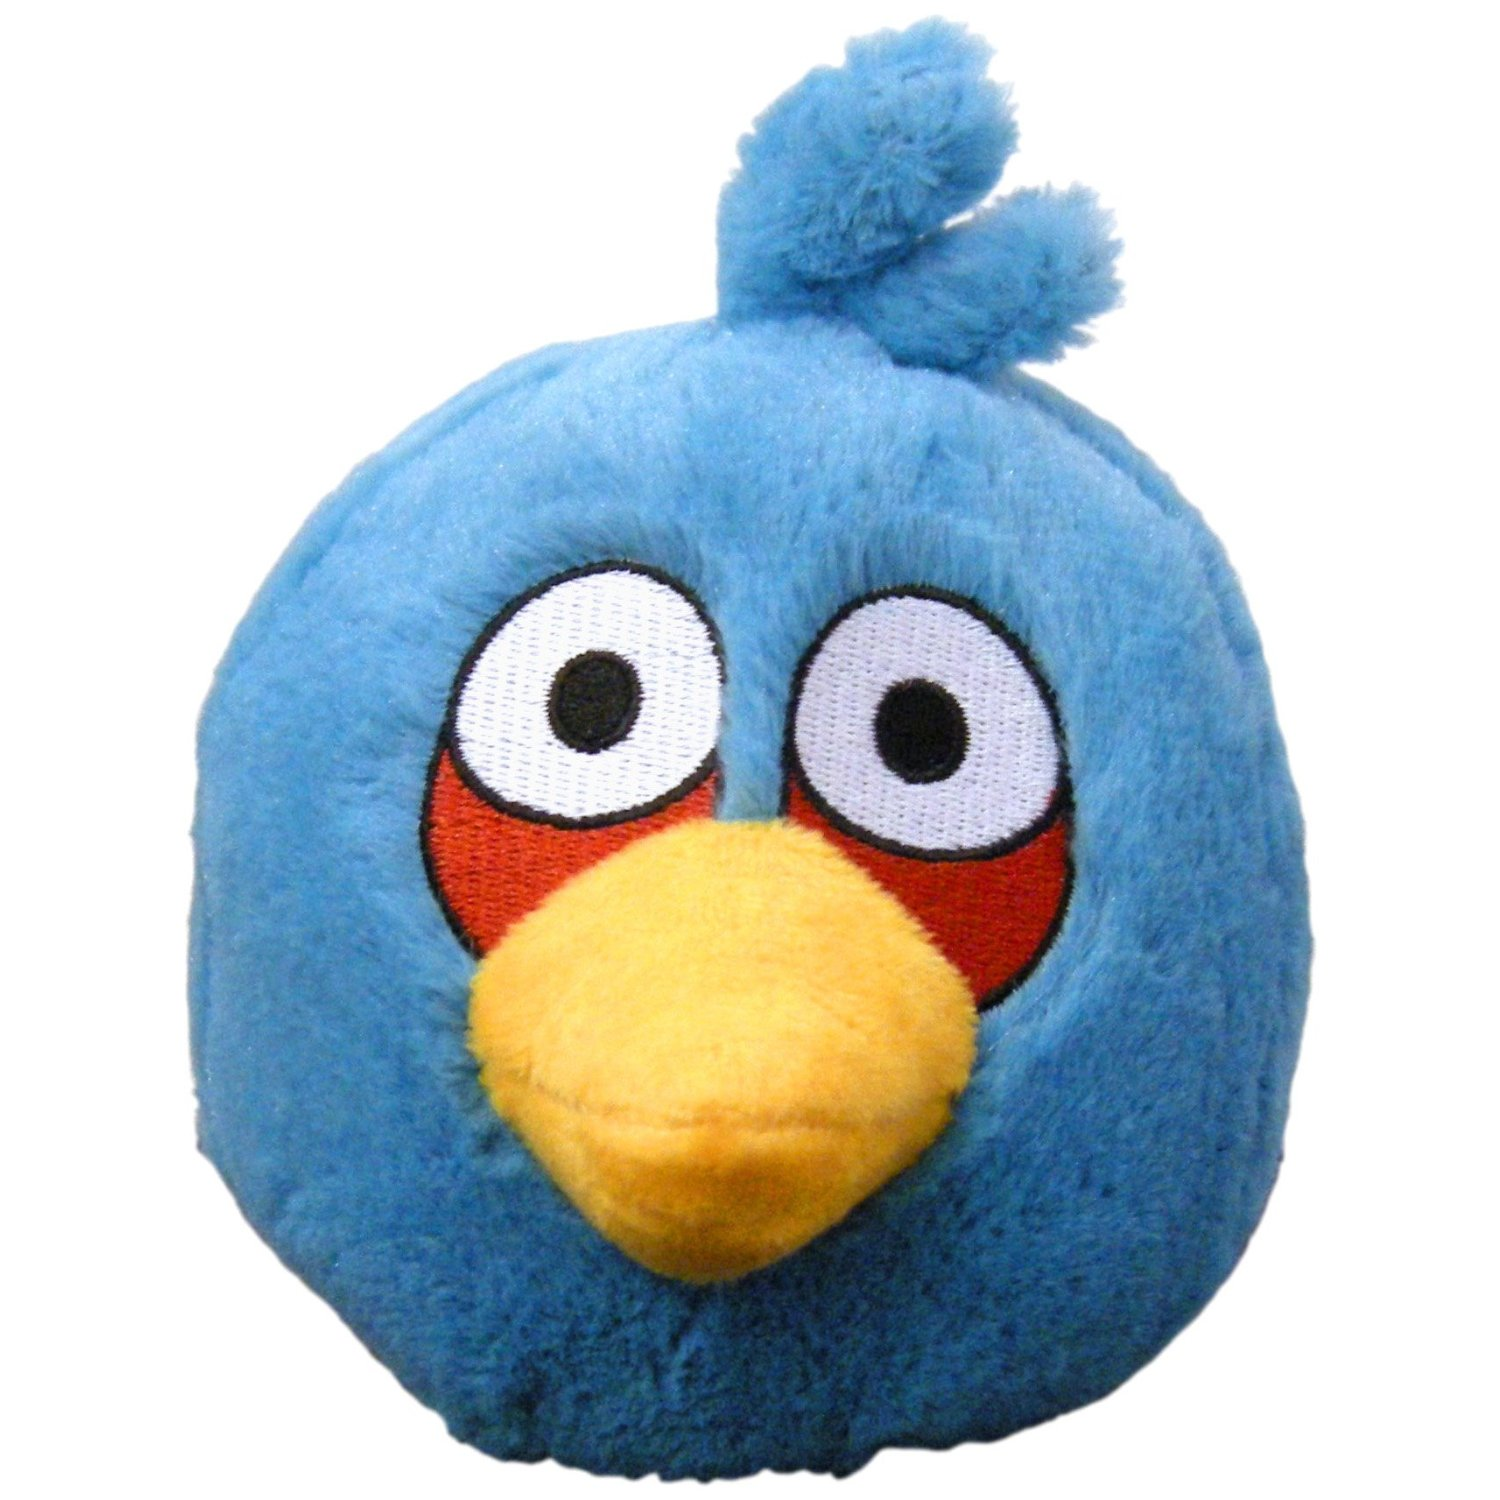 """Angry Birds Blue Bird 8"""" Plush With Sound - image 1 of 1"""